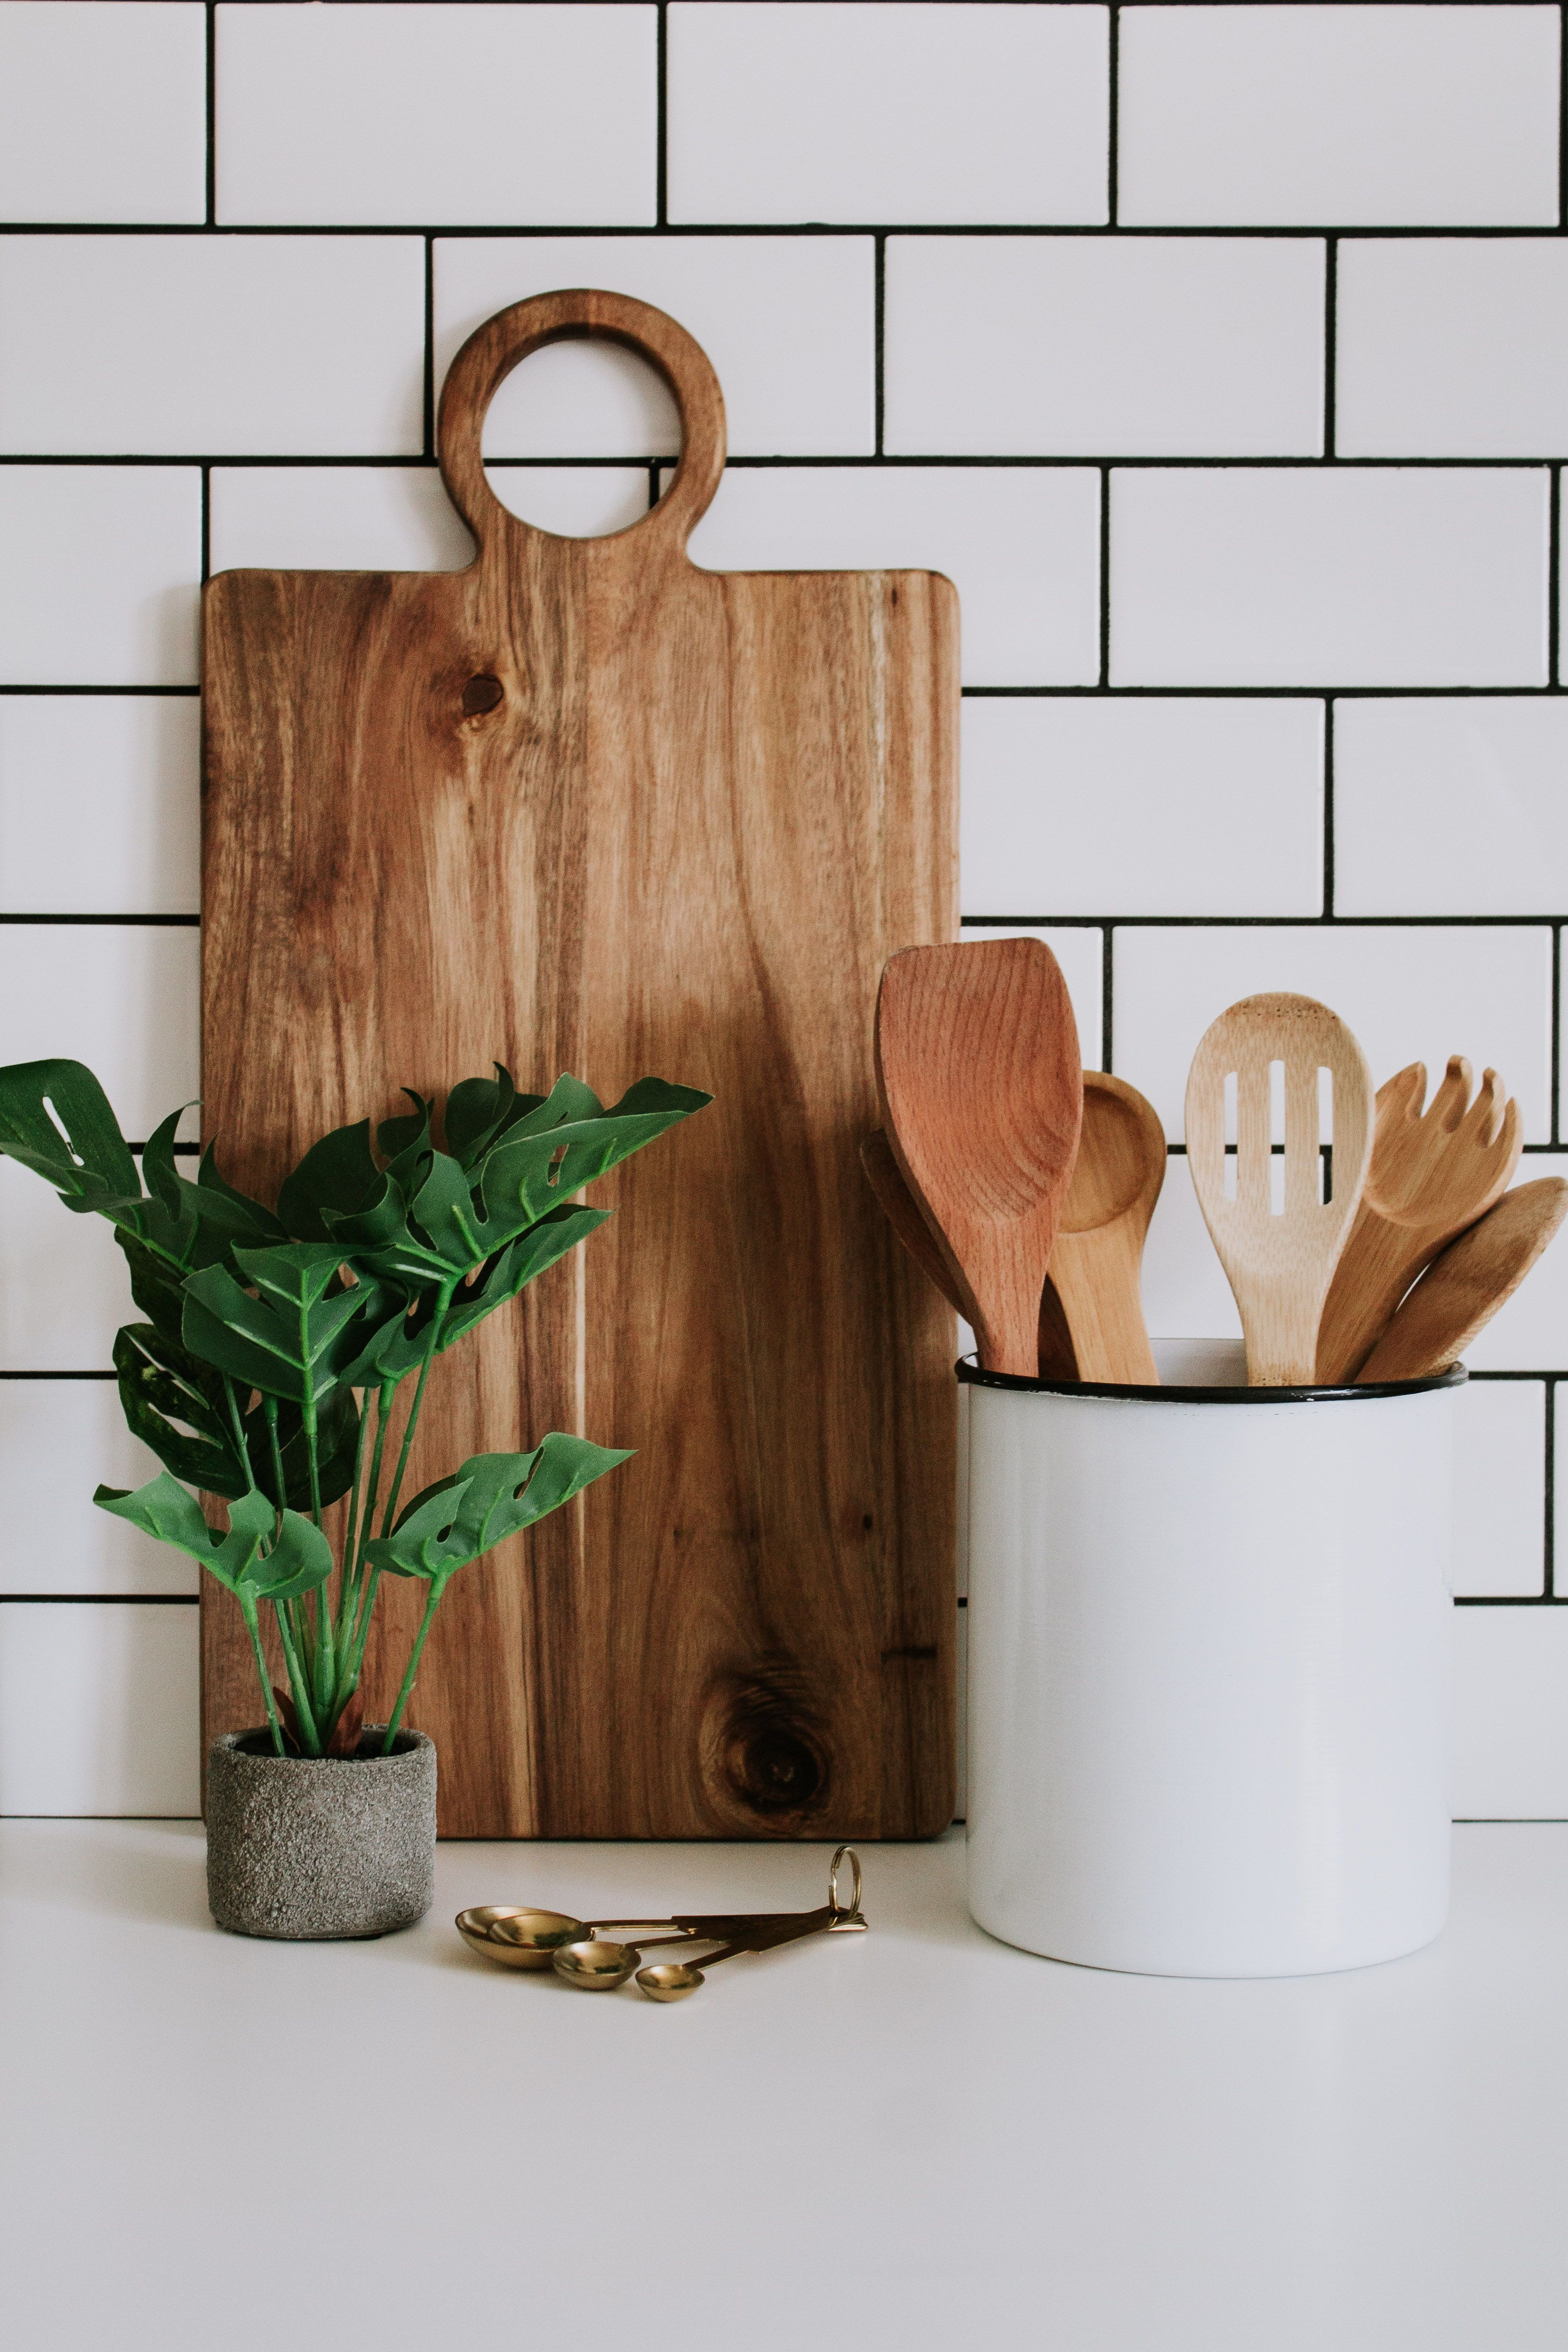 Shop | Nadine Stay -   17 home accessories Wood inspiration ideas